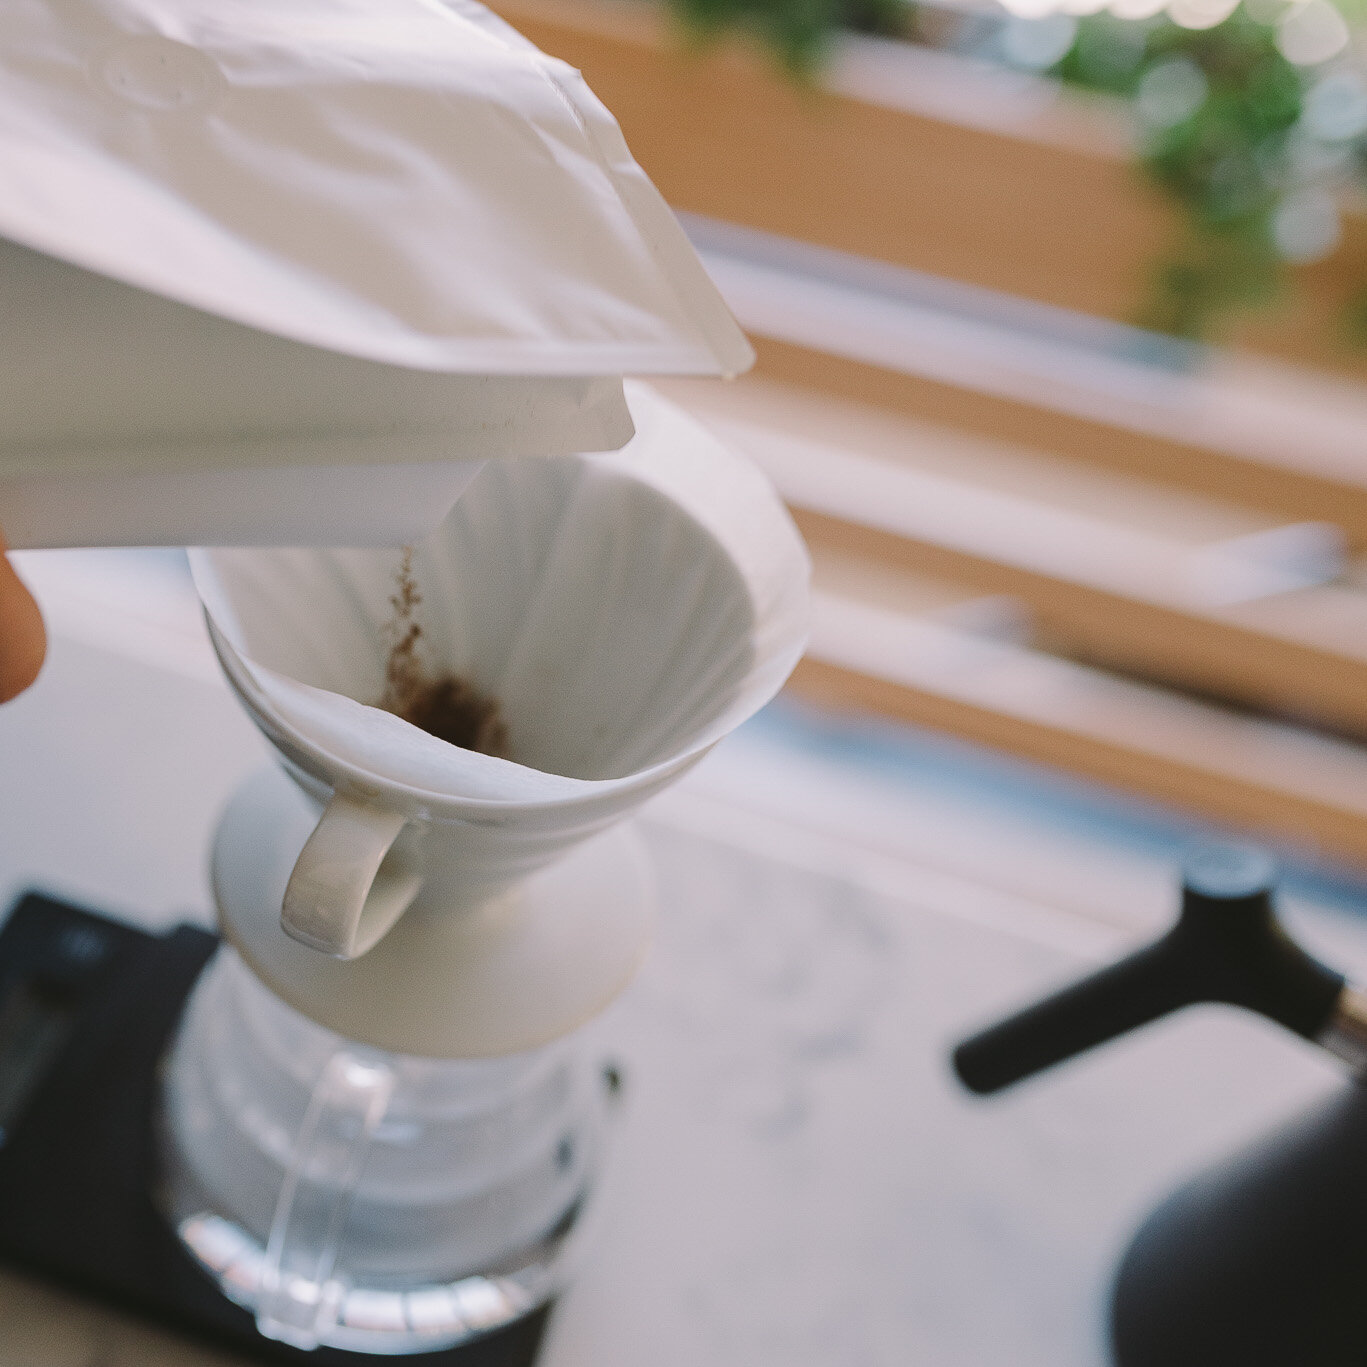 Adding coffee to V60 2 cup.